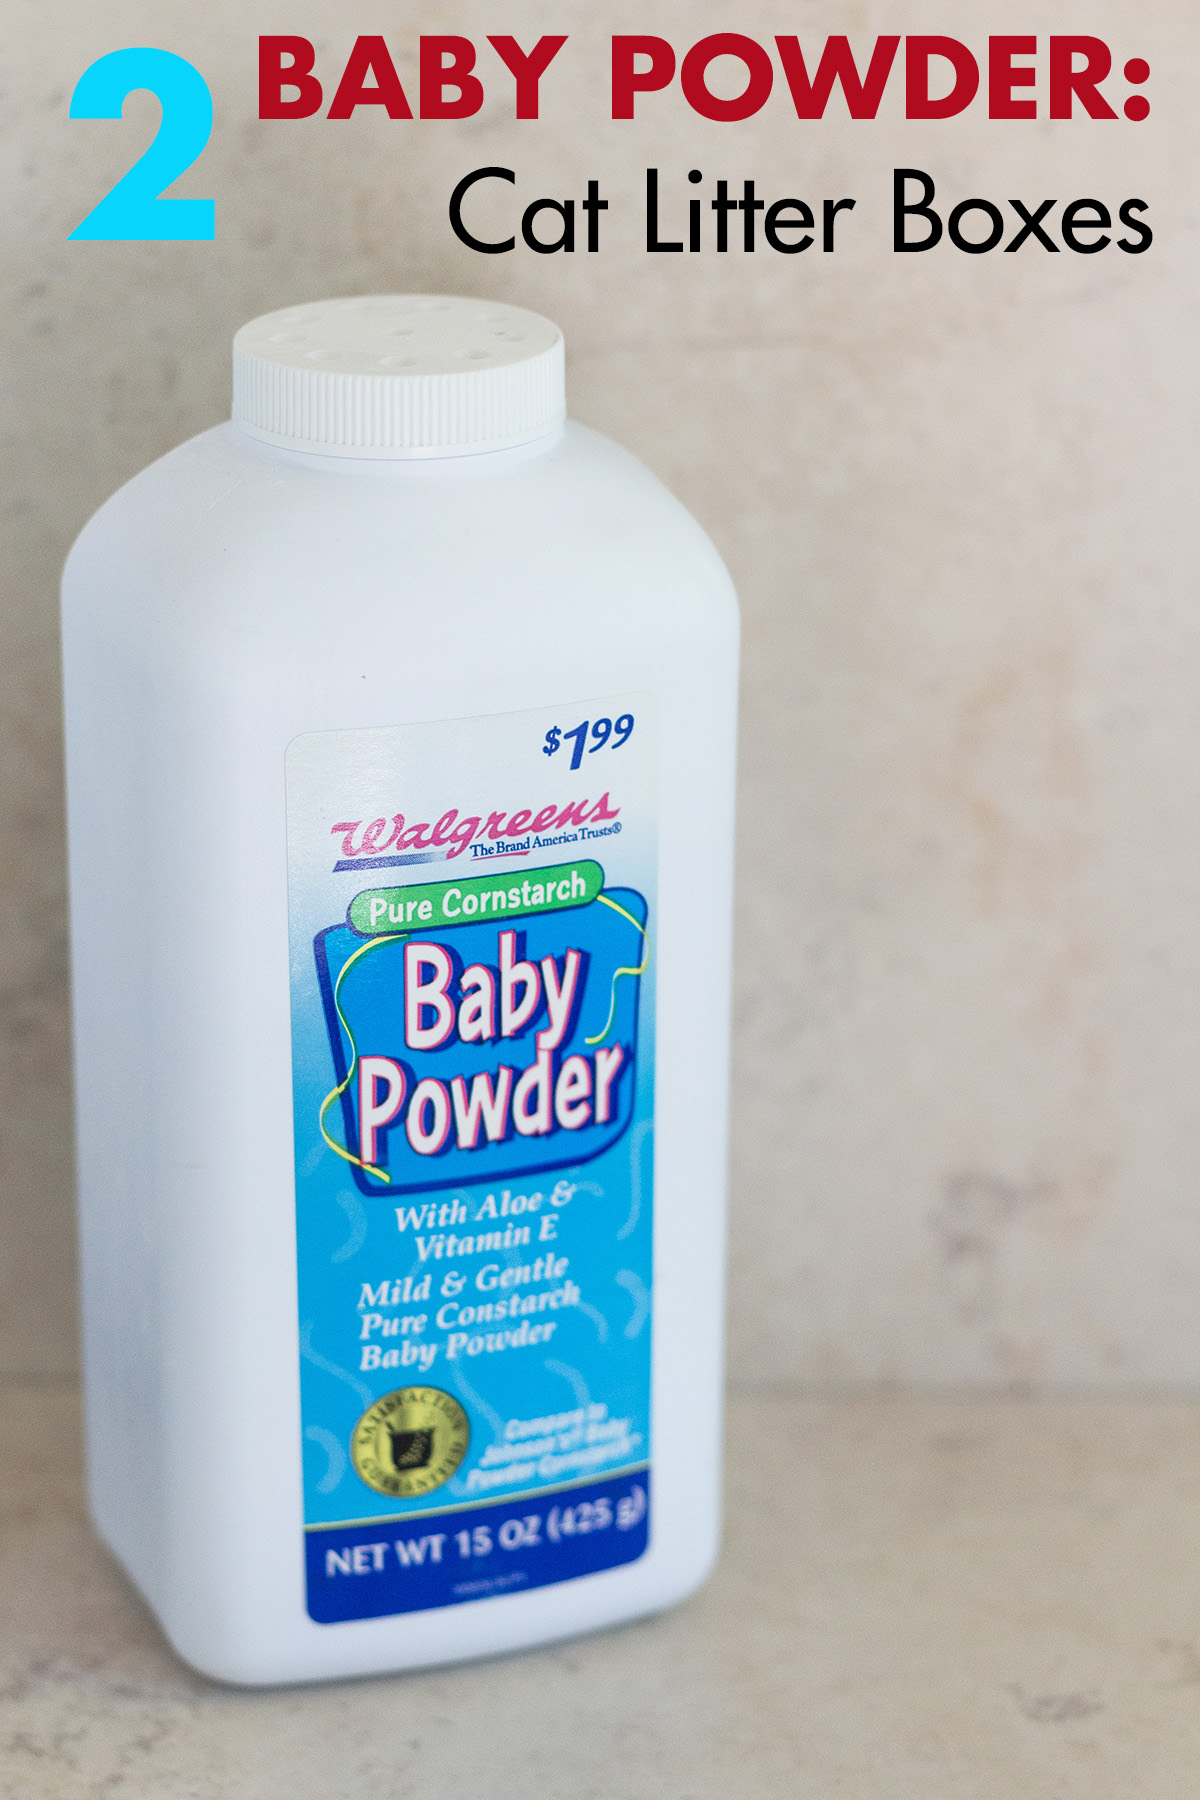 Baby Powder to Deodorize Cat Boxes